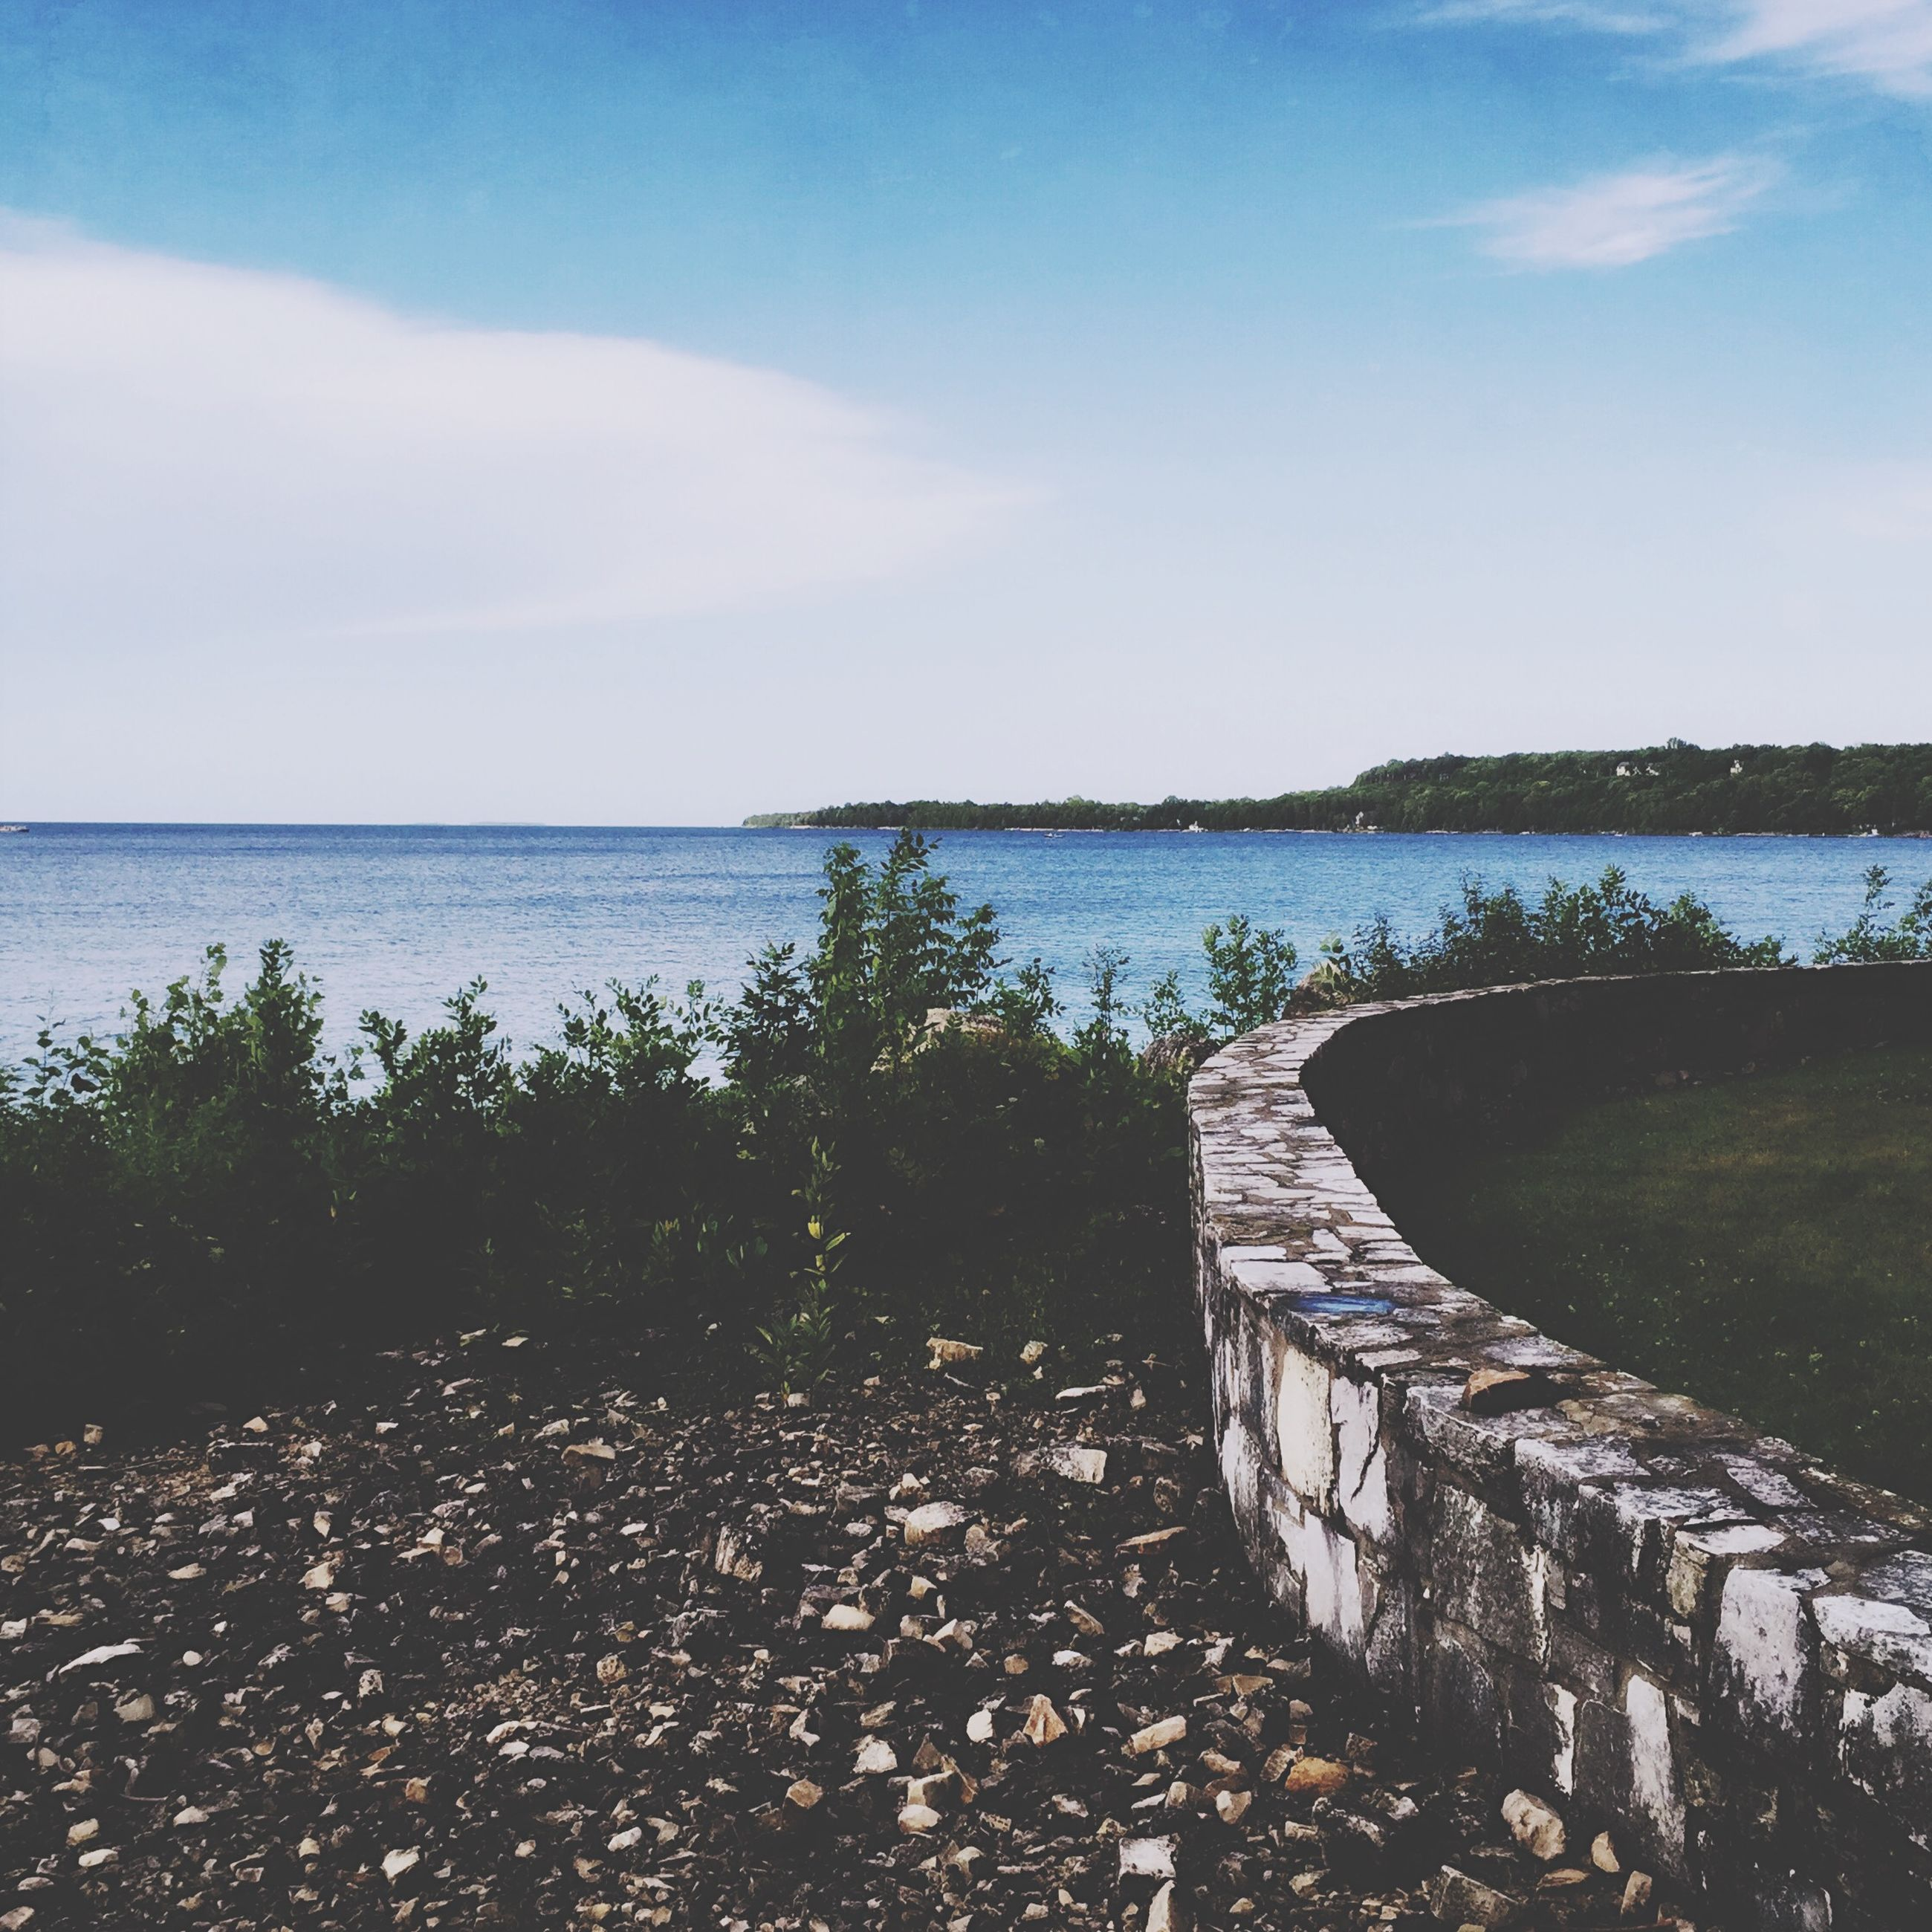 water, sky, tranquil scene, sea, tranquility, scenics, beauty in nature, horizon over water, nature, blue, cloud - sky, cloud, idyllic, rock - object, day, calm, lake, no people, outdoors, reflection